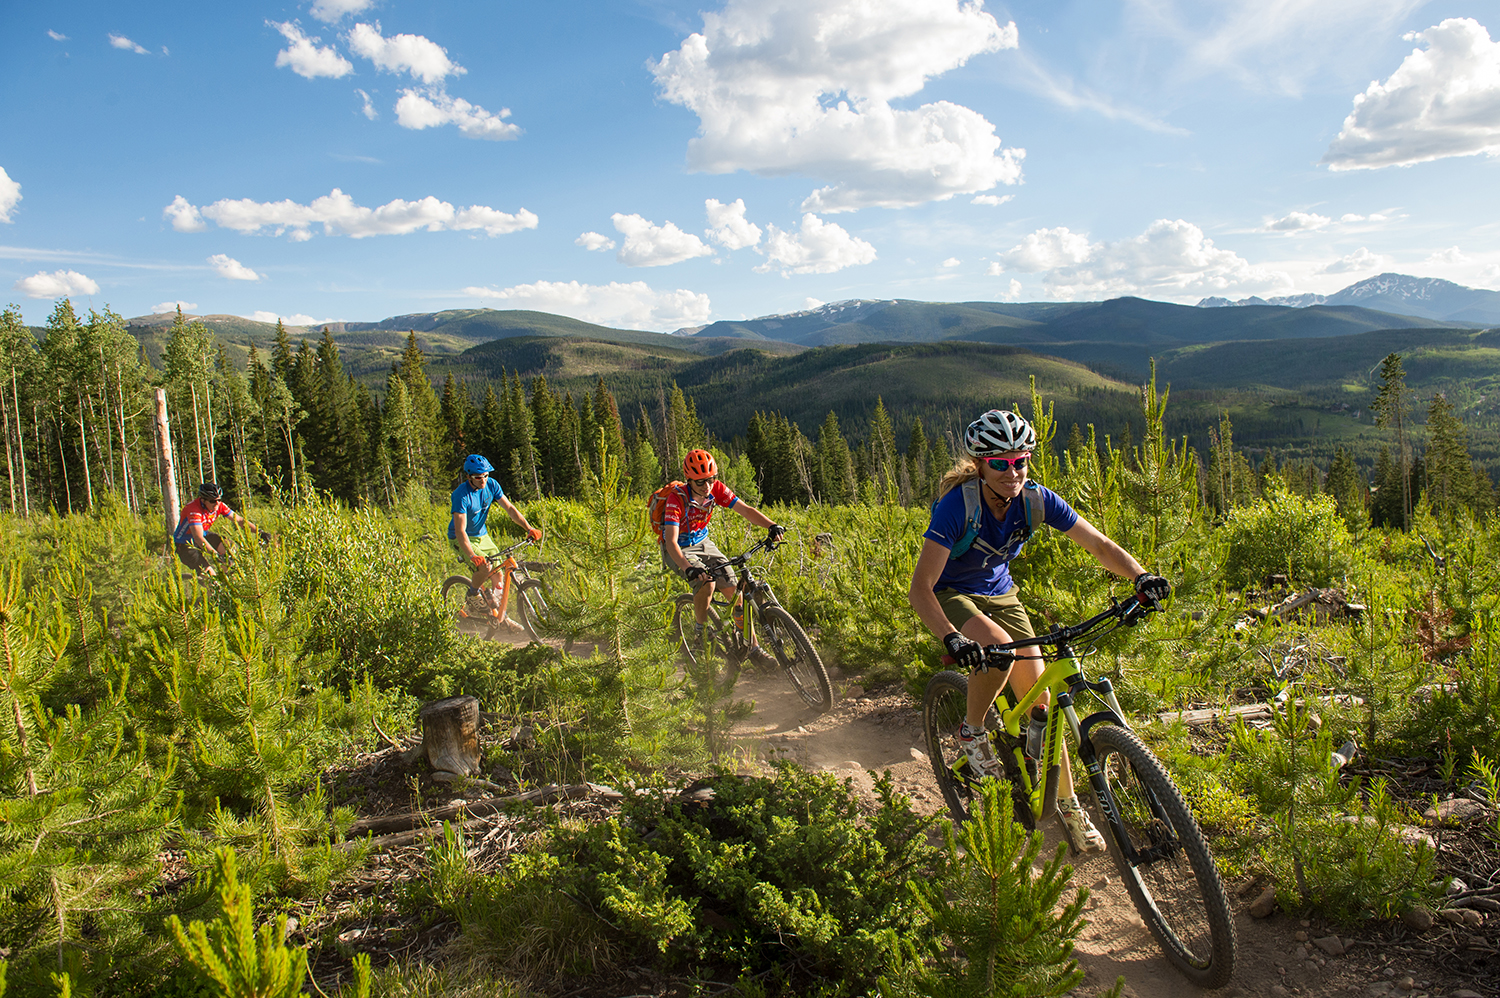 WinterPark_COC_July2016_1382_2_squarespace.jpg